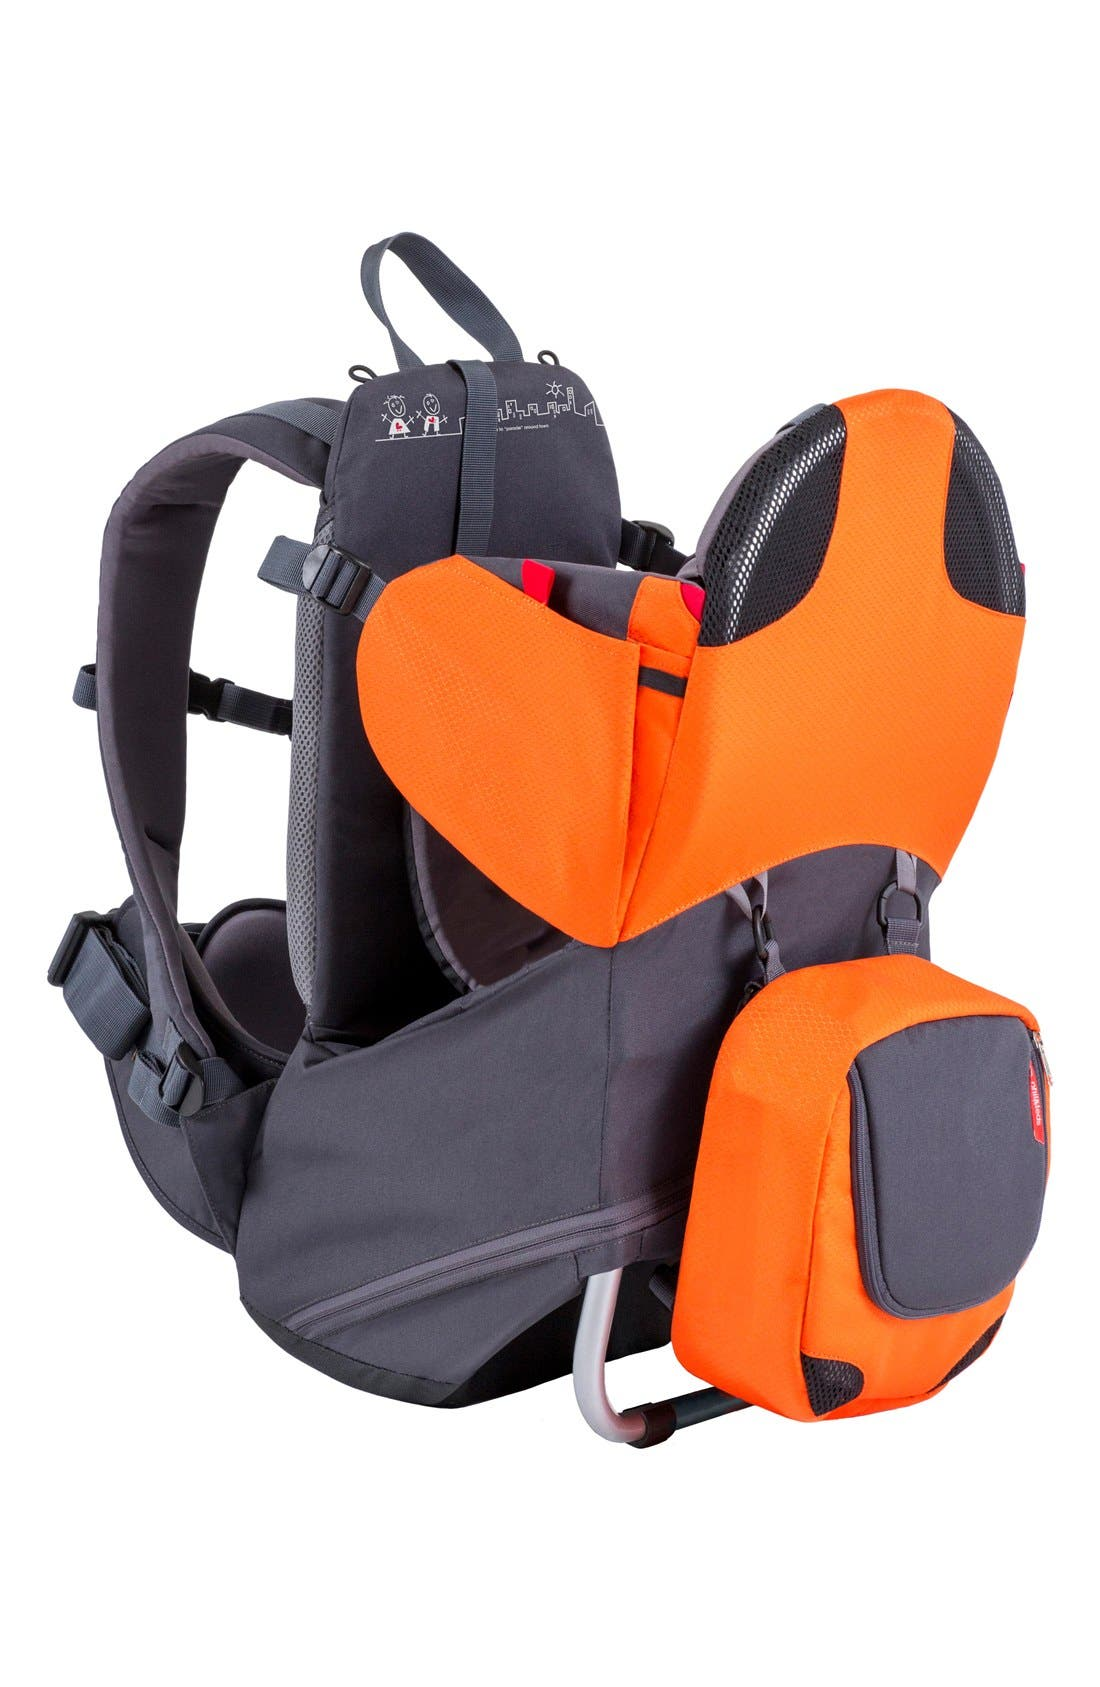 Alternate Image 1 Selected - Phil&Teds Baby Gear  'Parade' Backpack Carrier